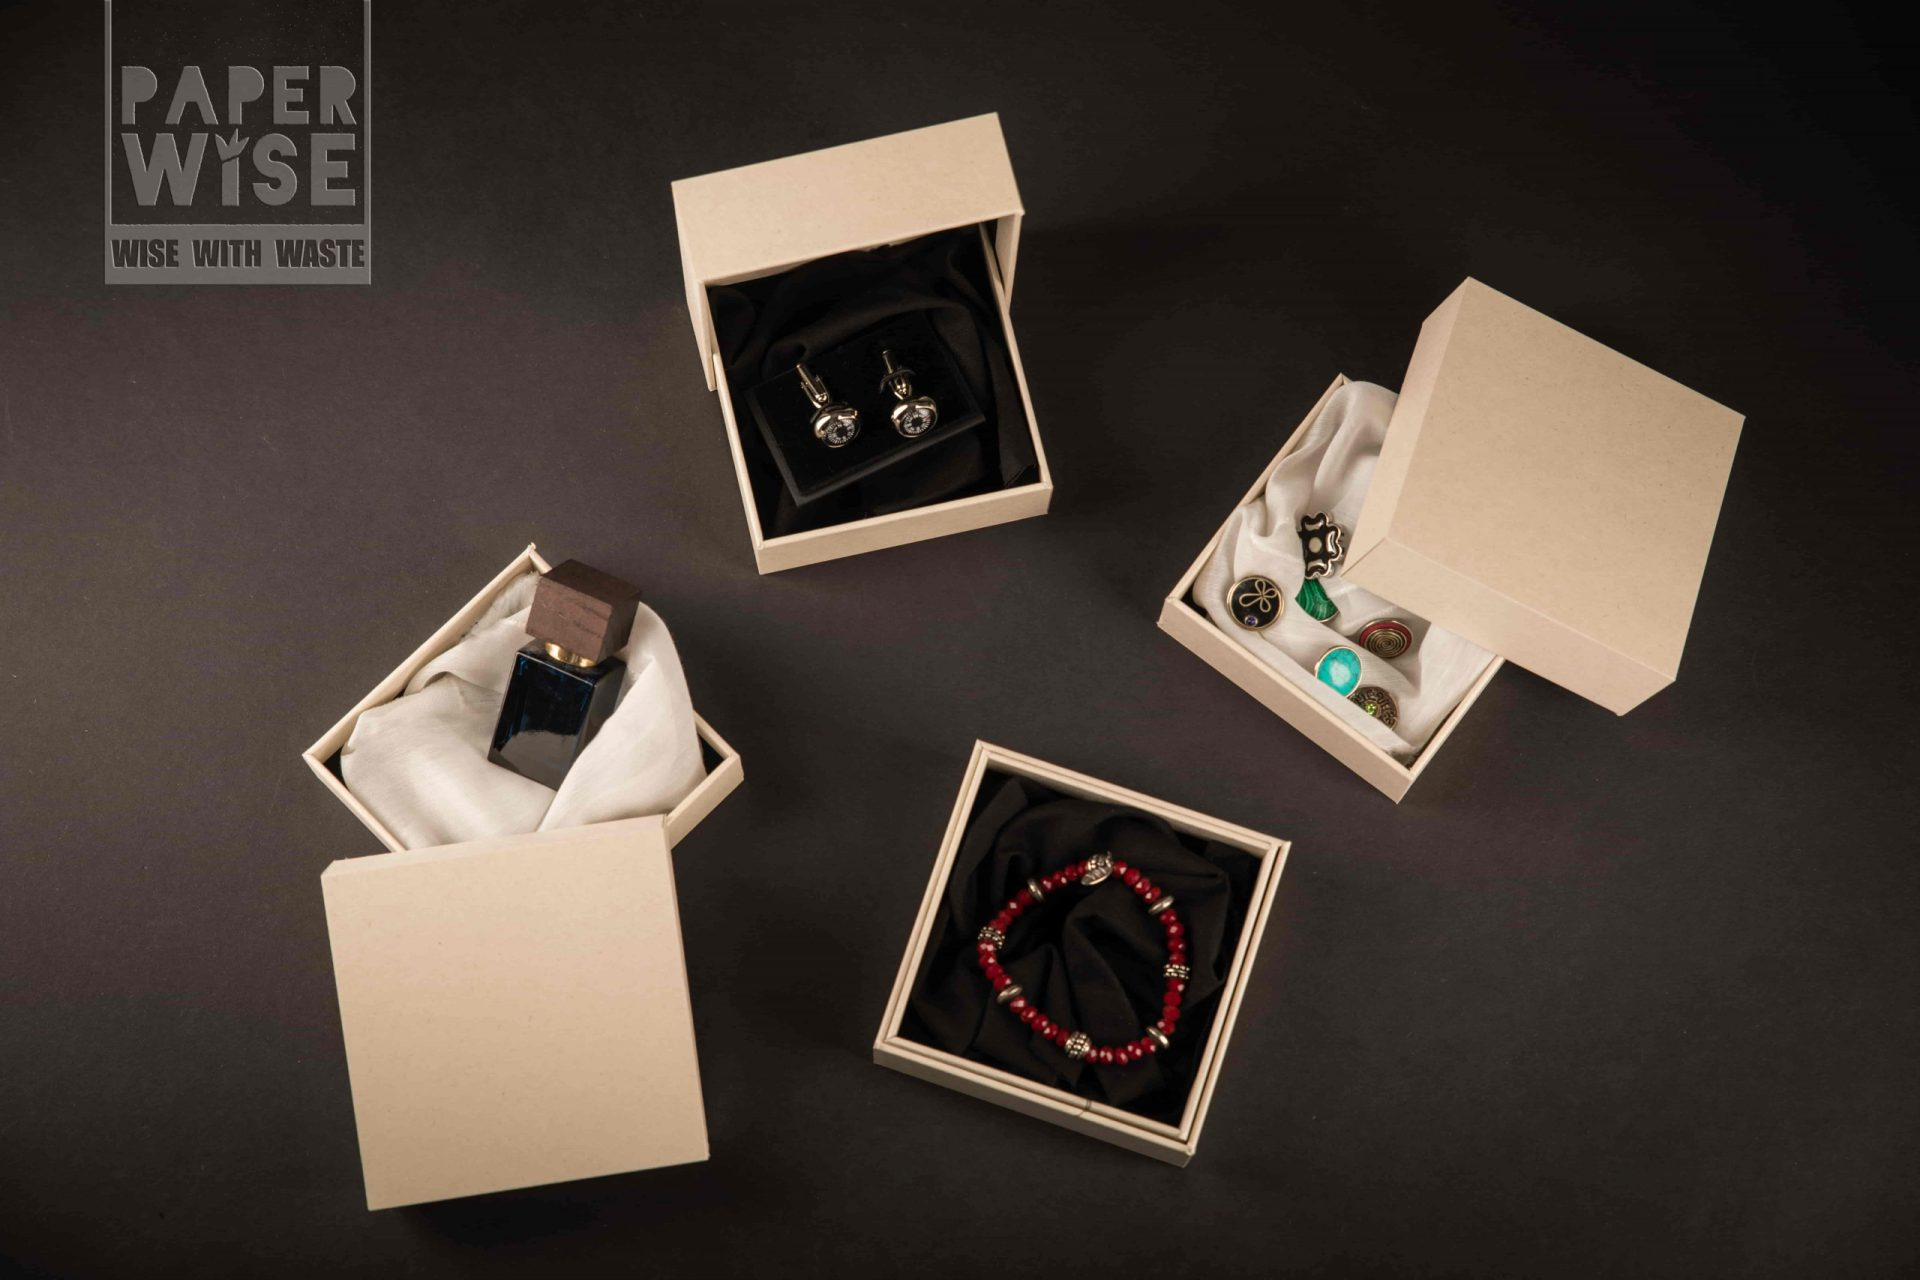 PaperWise packaging jewellery beauty box